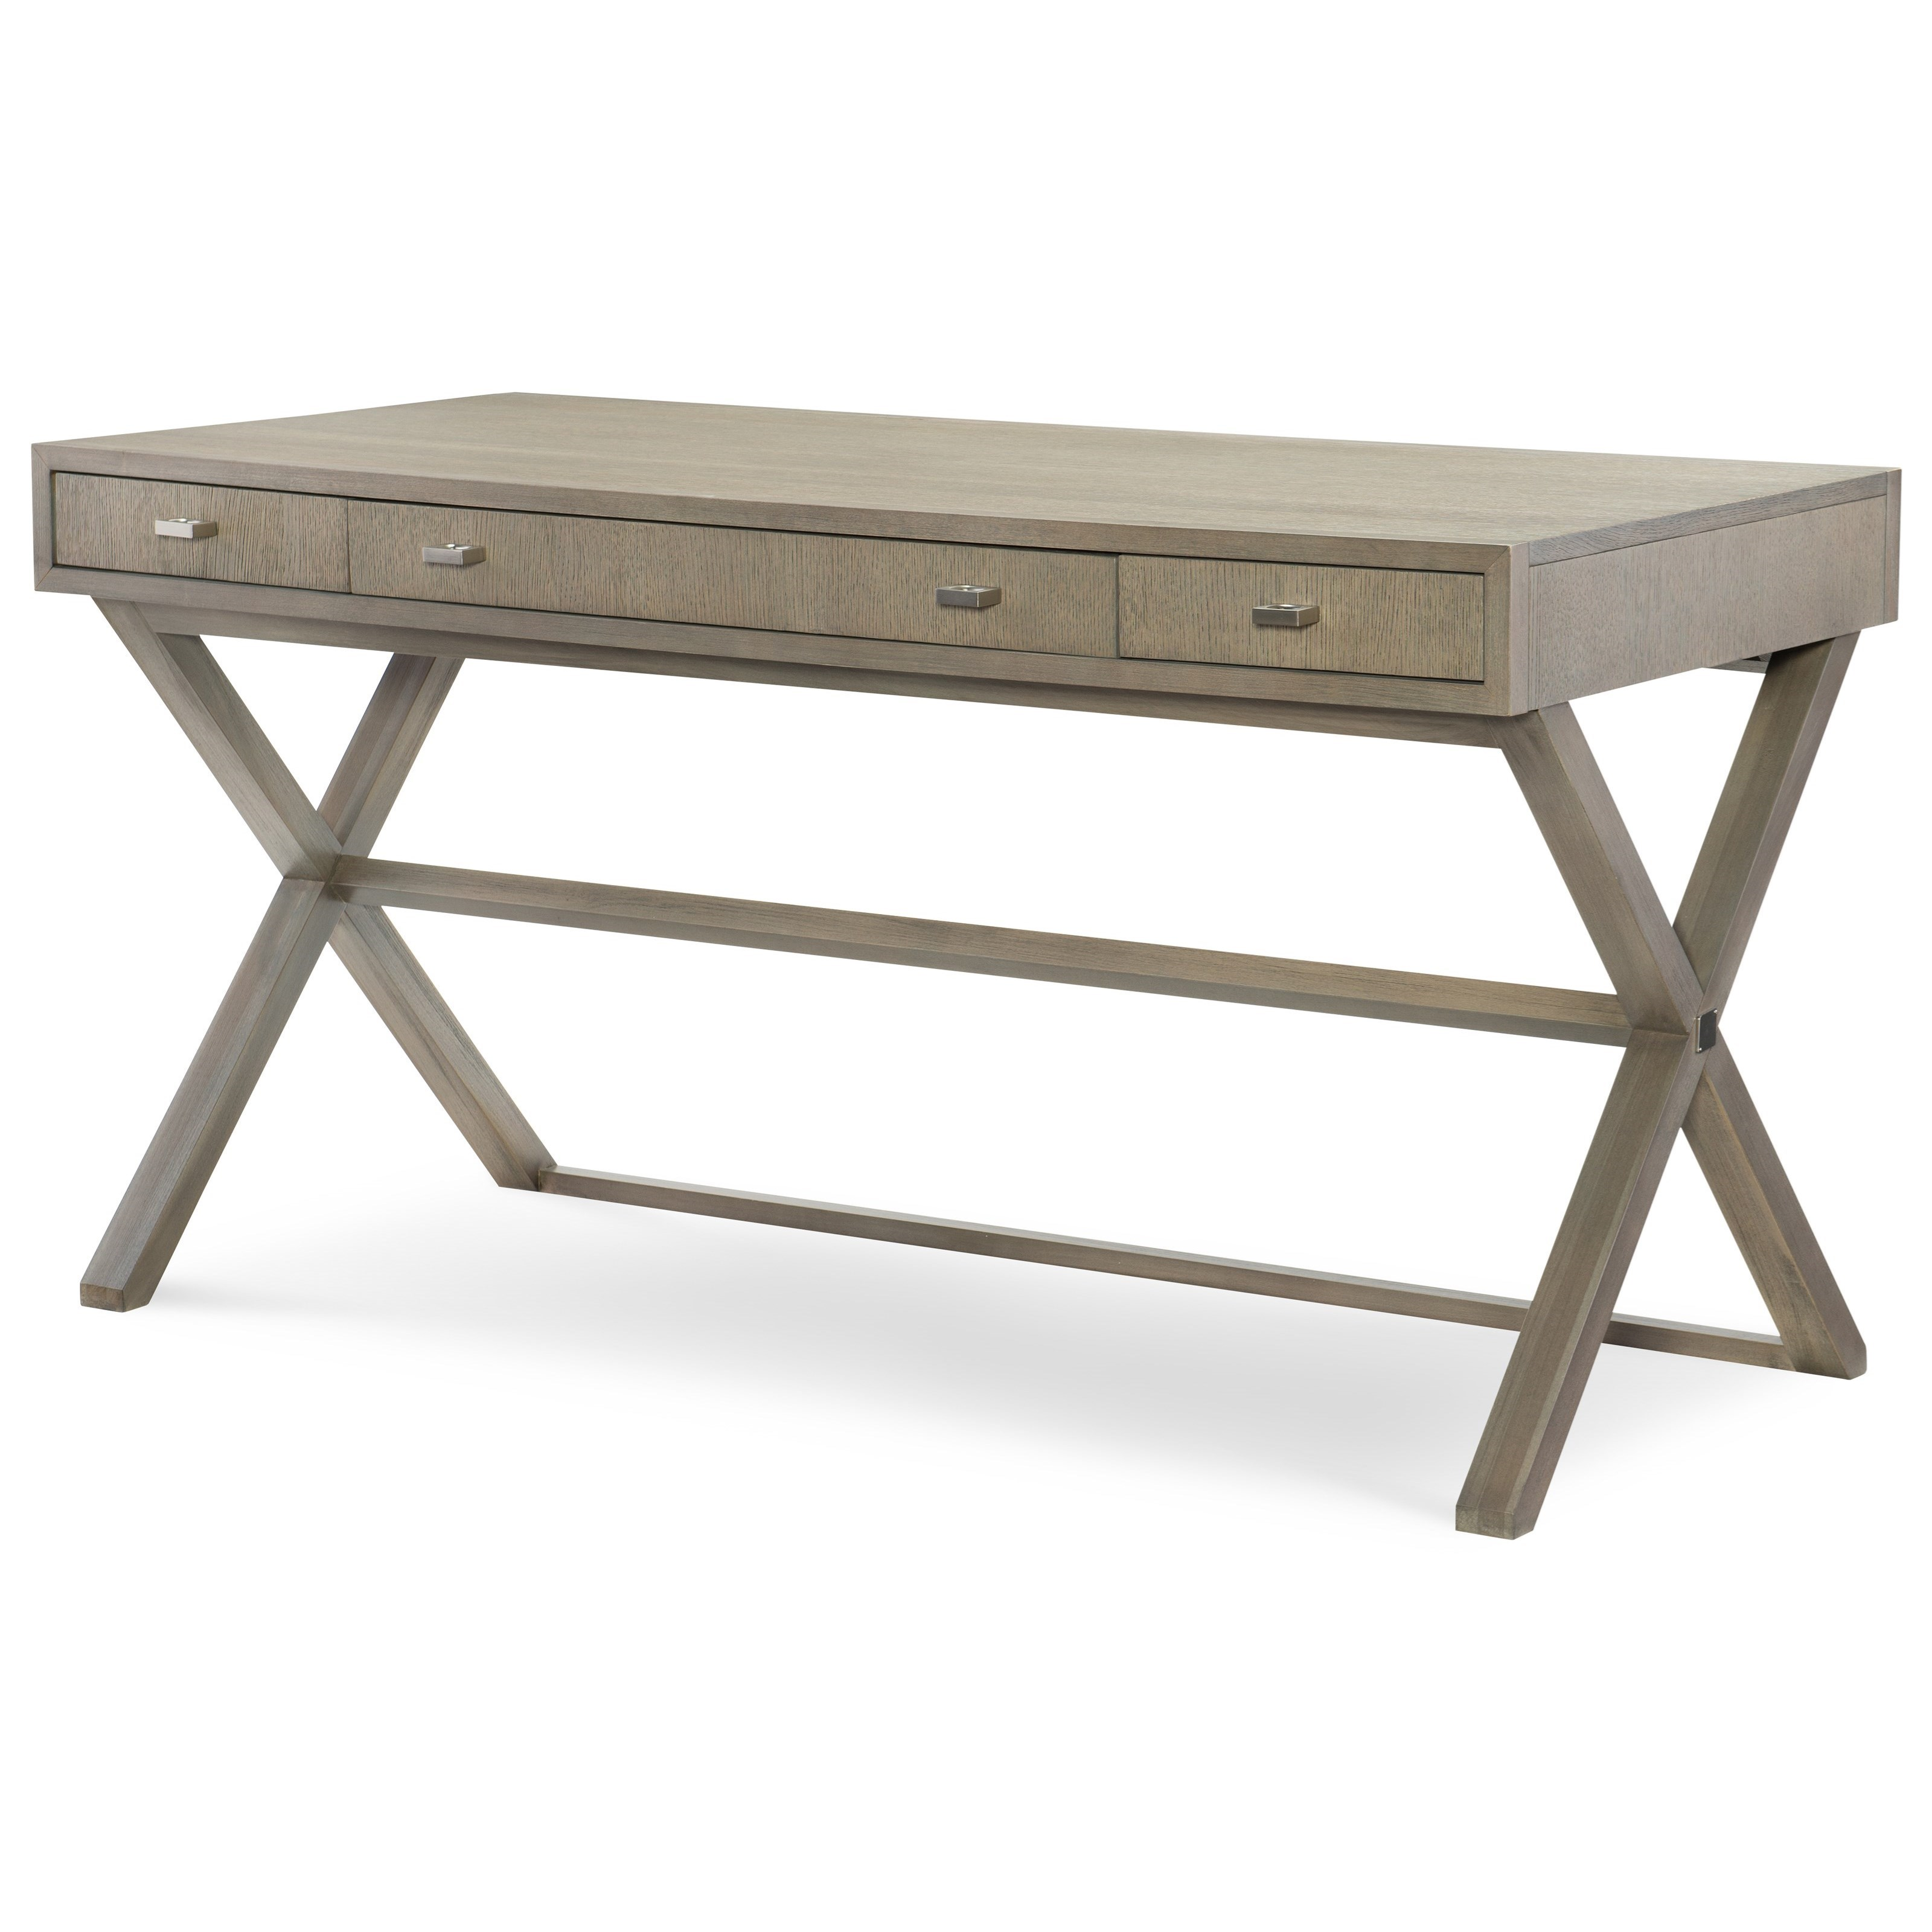 Rachael ray home by legacy classic high line desk sofa for Sofa table higher than sofa